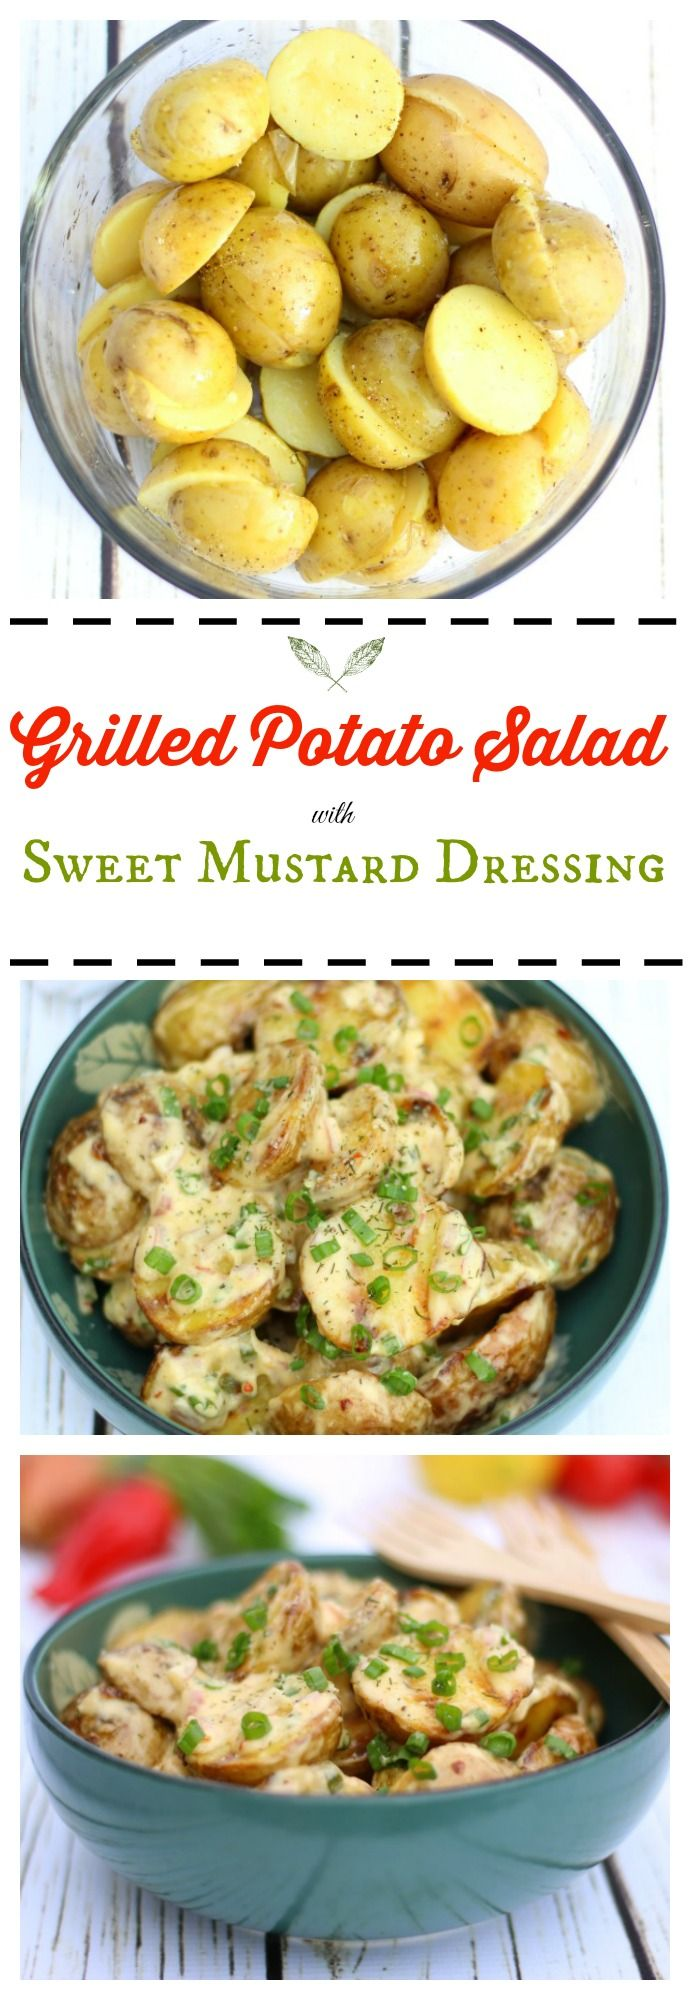 This grilled potato salad with sweet mustard dressing is an incredibly tasty side dish for your summer cookout! ribaswithlove.com